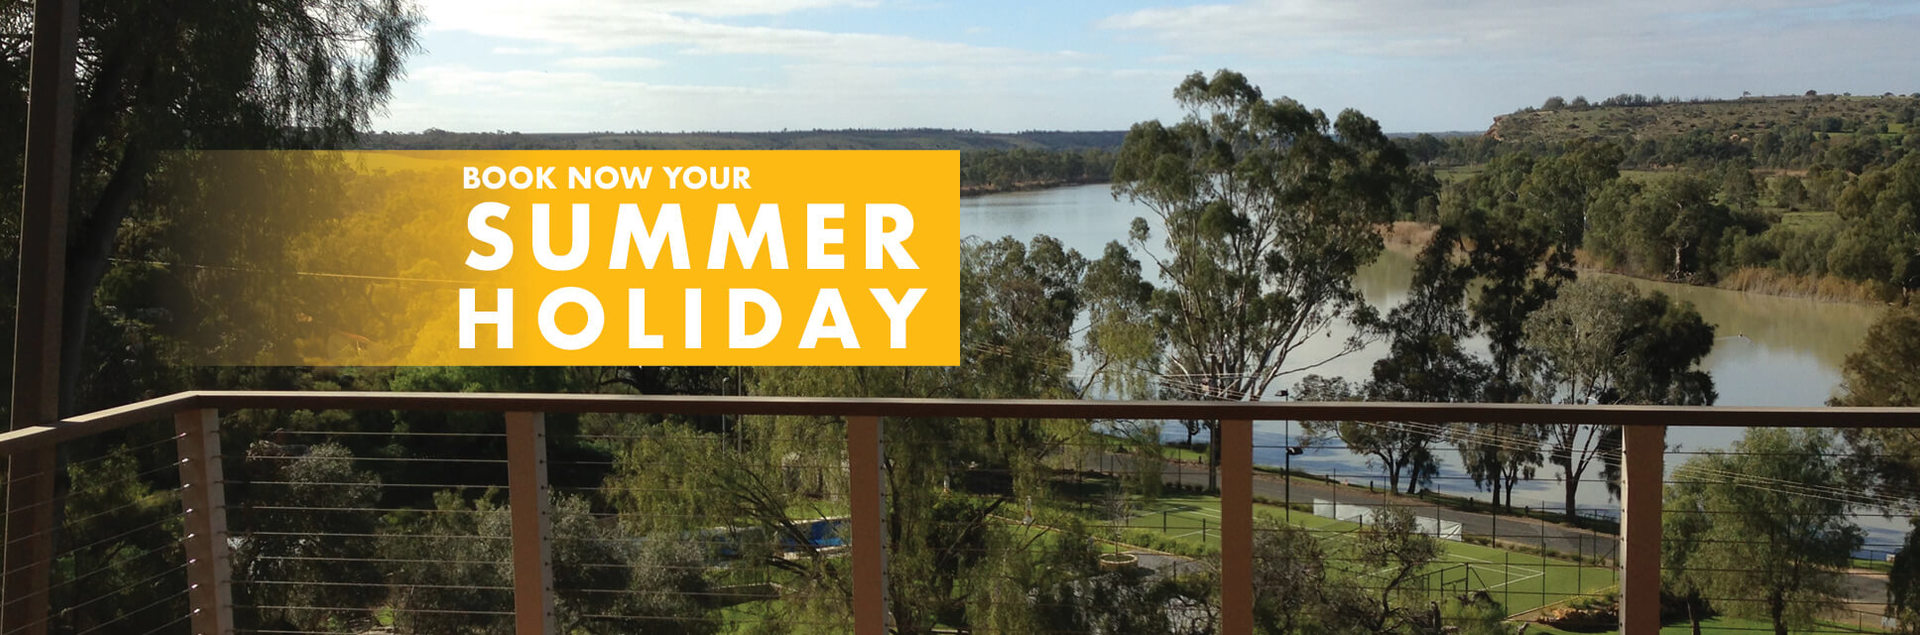 Aruma-River-Resort-Walker-Flat-River-Murray-Shack-Accommodation-banner1.jpg